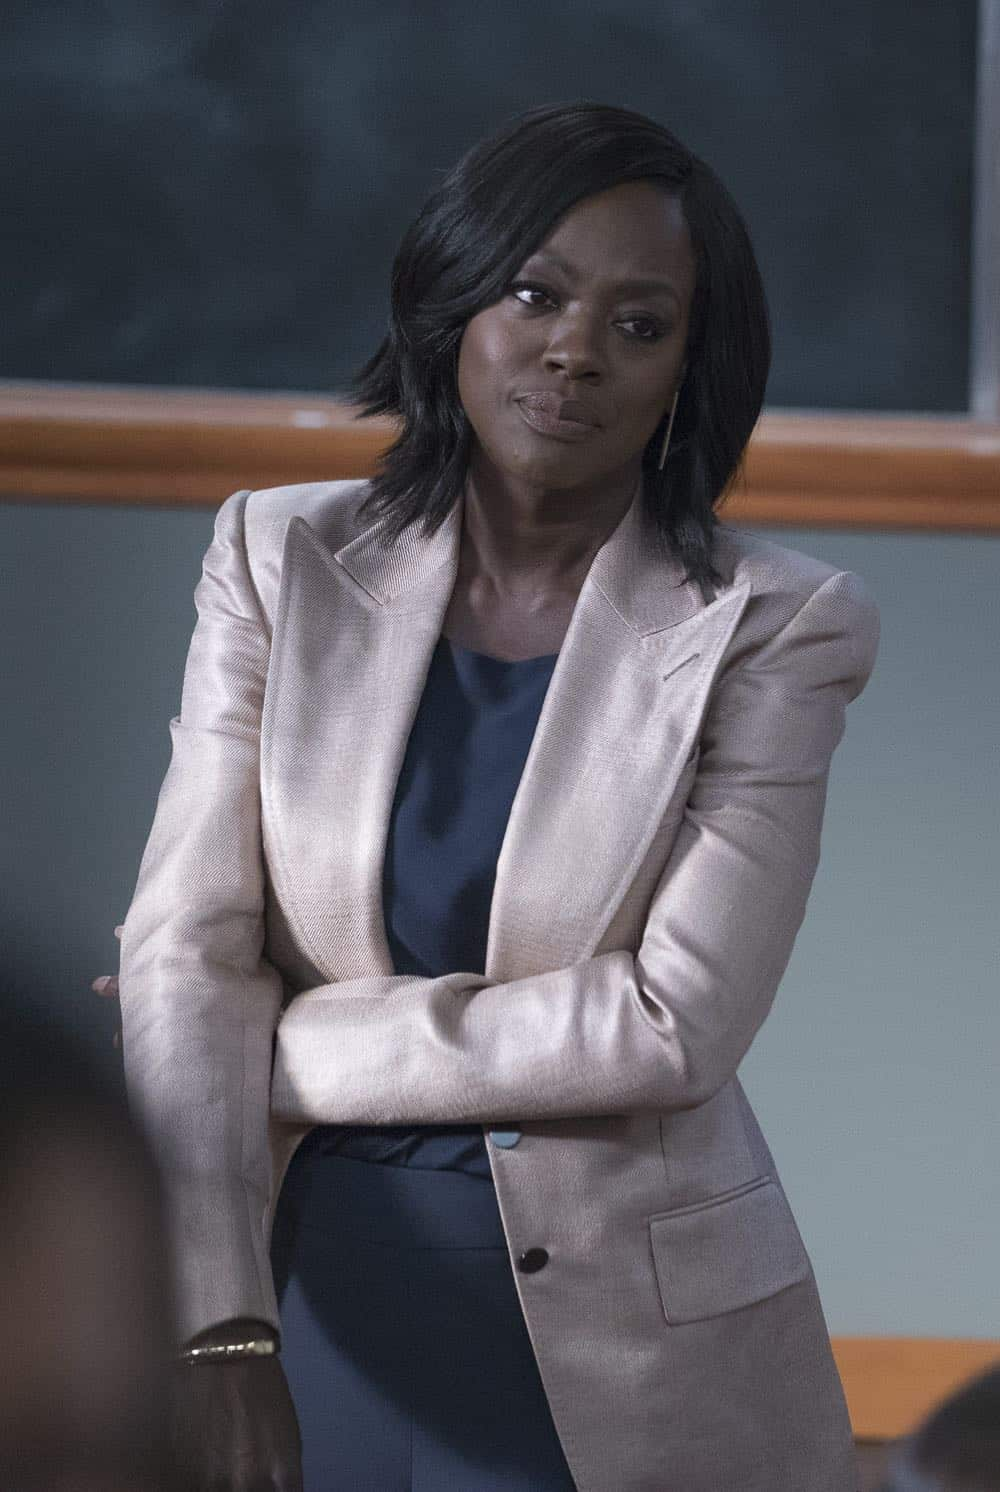 HOW TO GET AWAY WITH MURDER Season 5 Episode 2 Whose Blood Is That 14